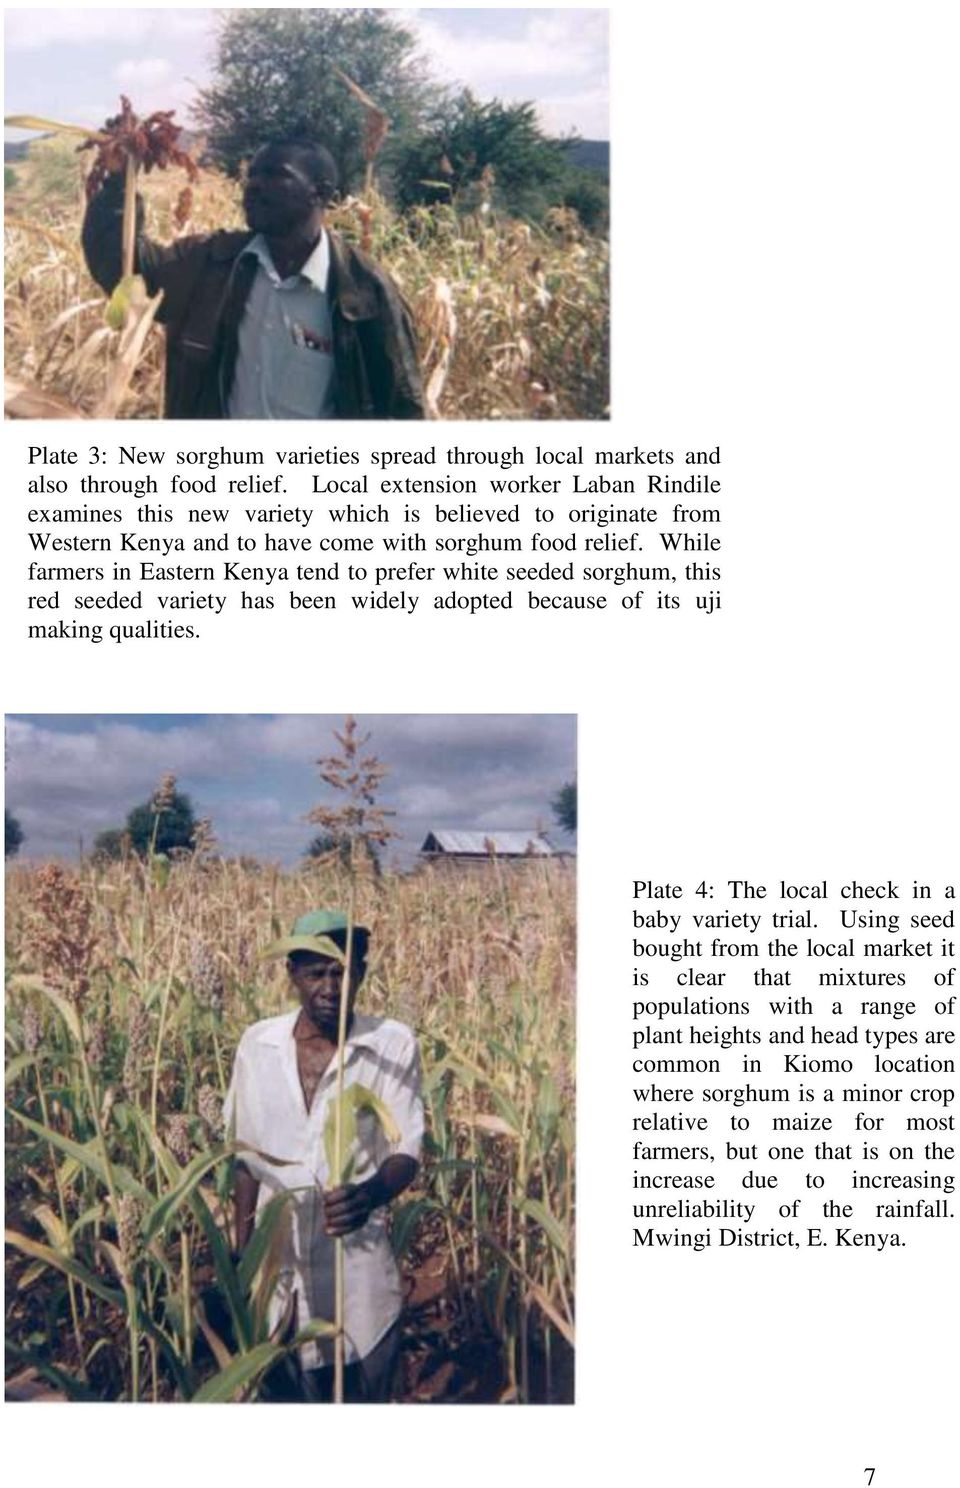 While farmers in Eastern Kenya tend to prefer white seeded sorghum, this red seeded variety has been widely adopted because of its uji making qualities.